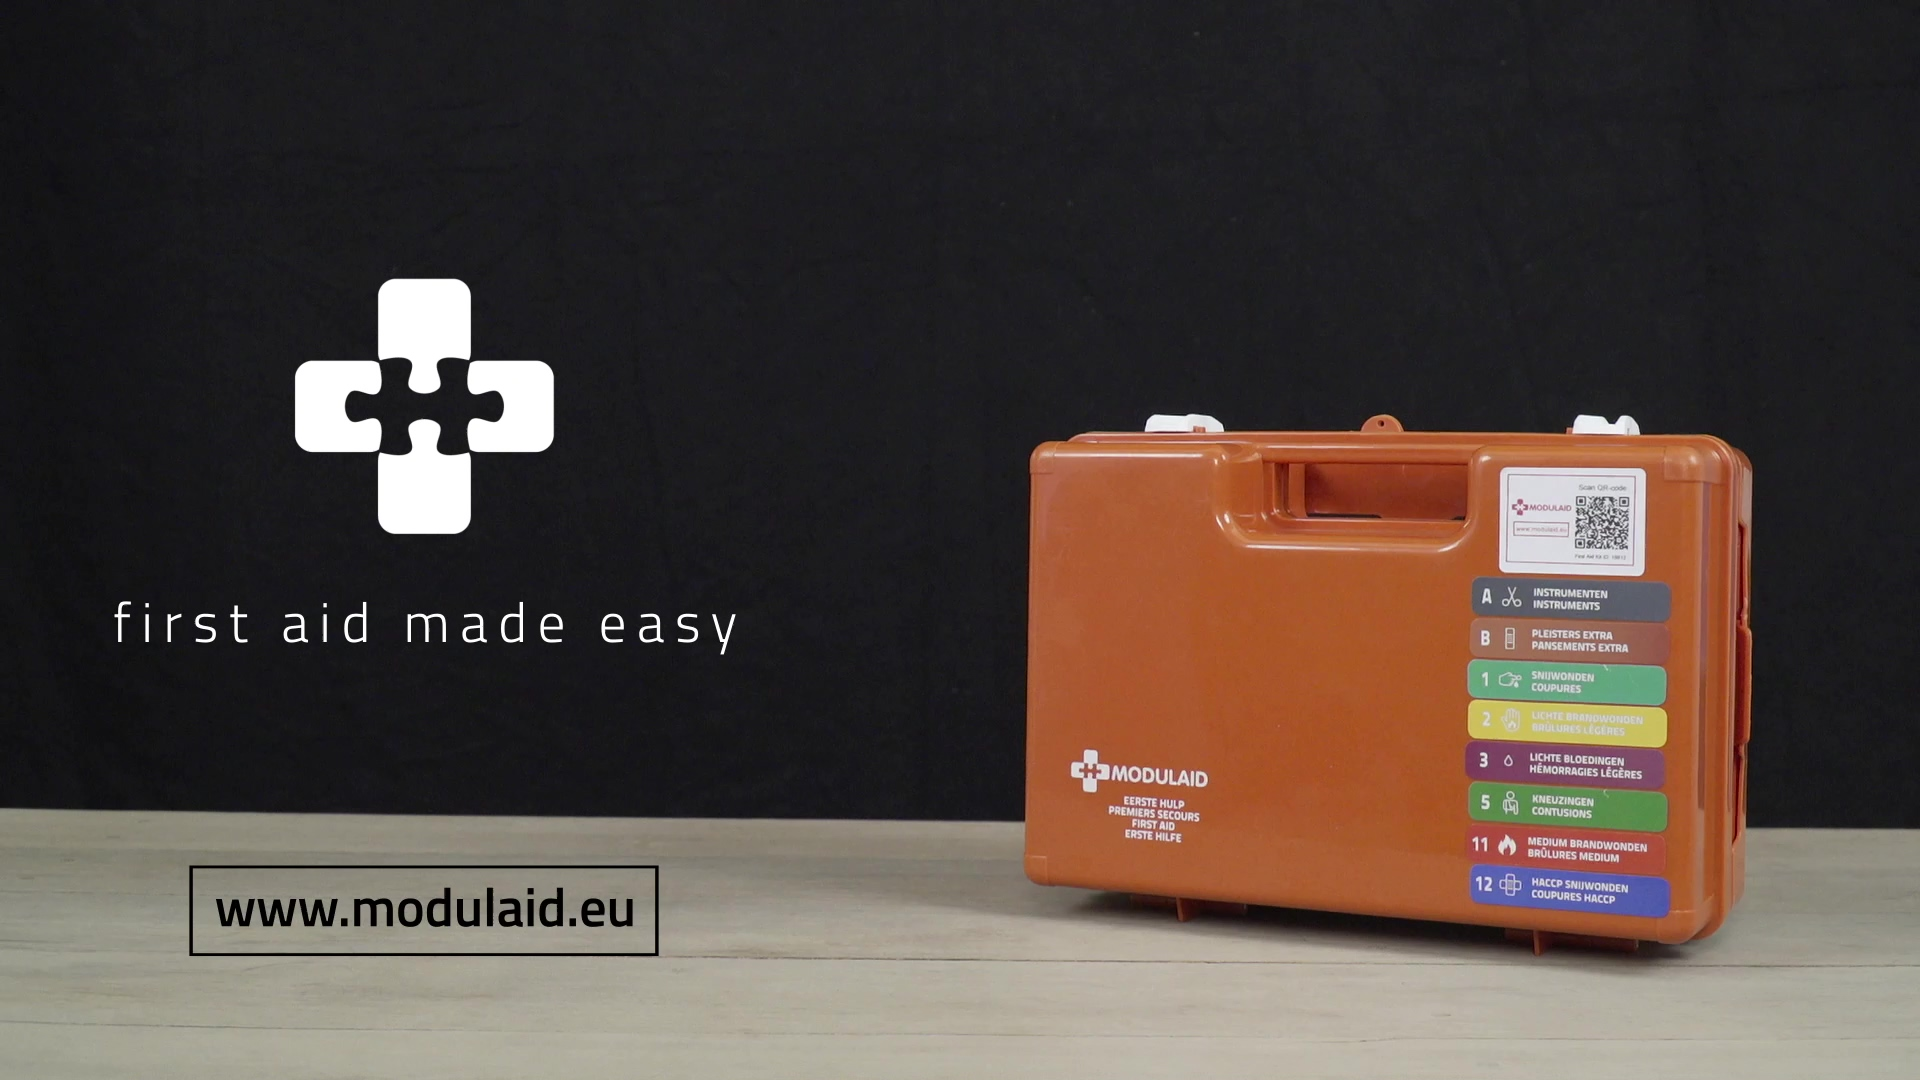 Modulaid-productvideo